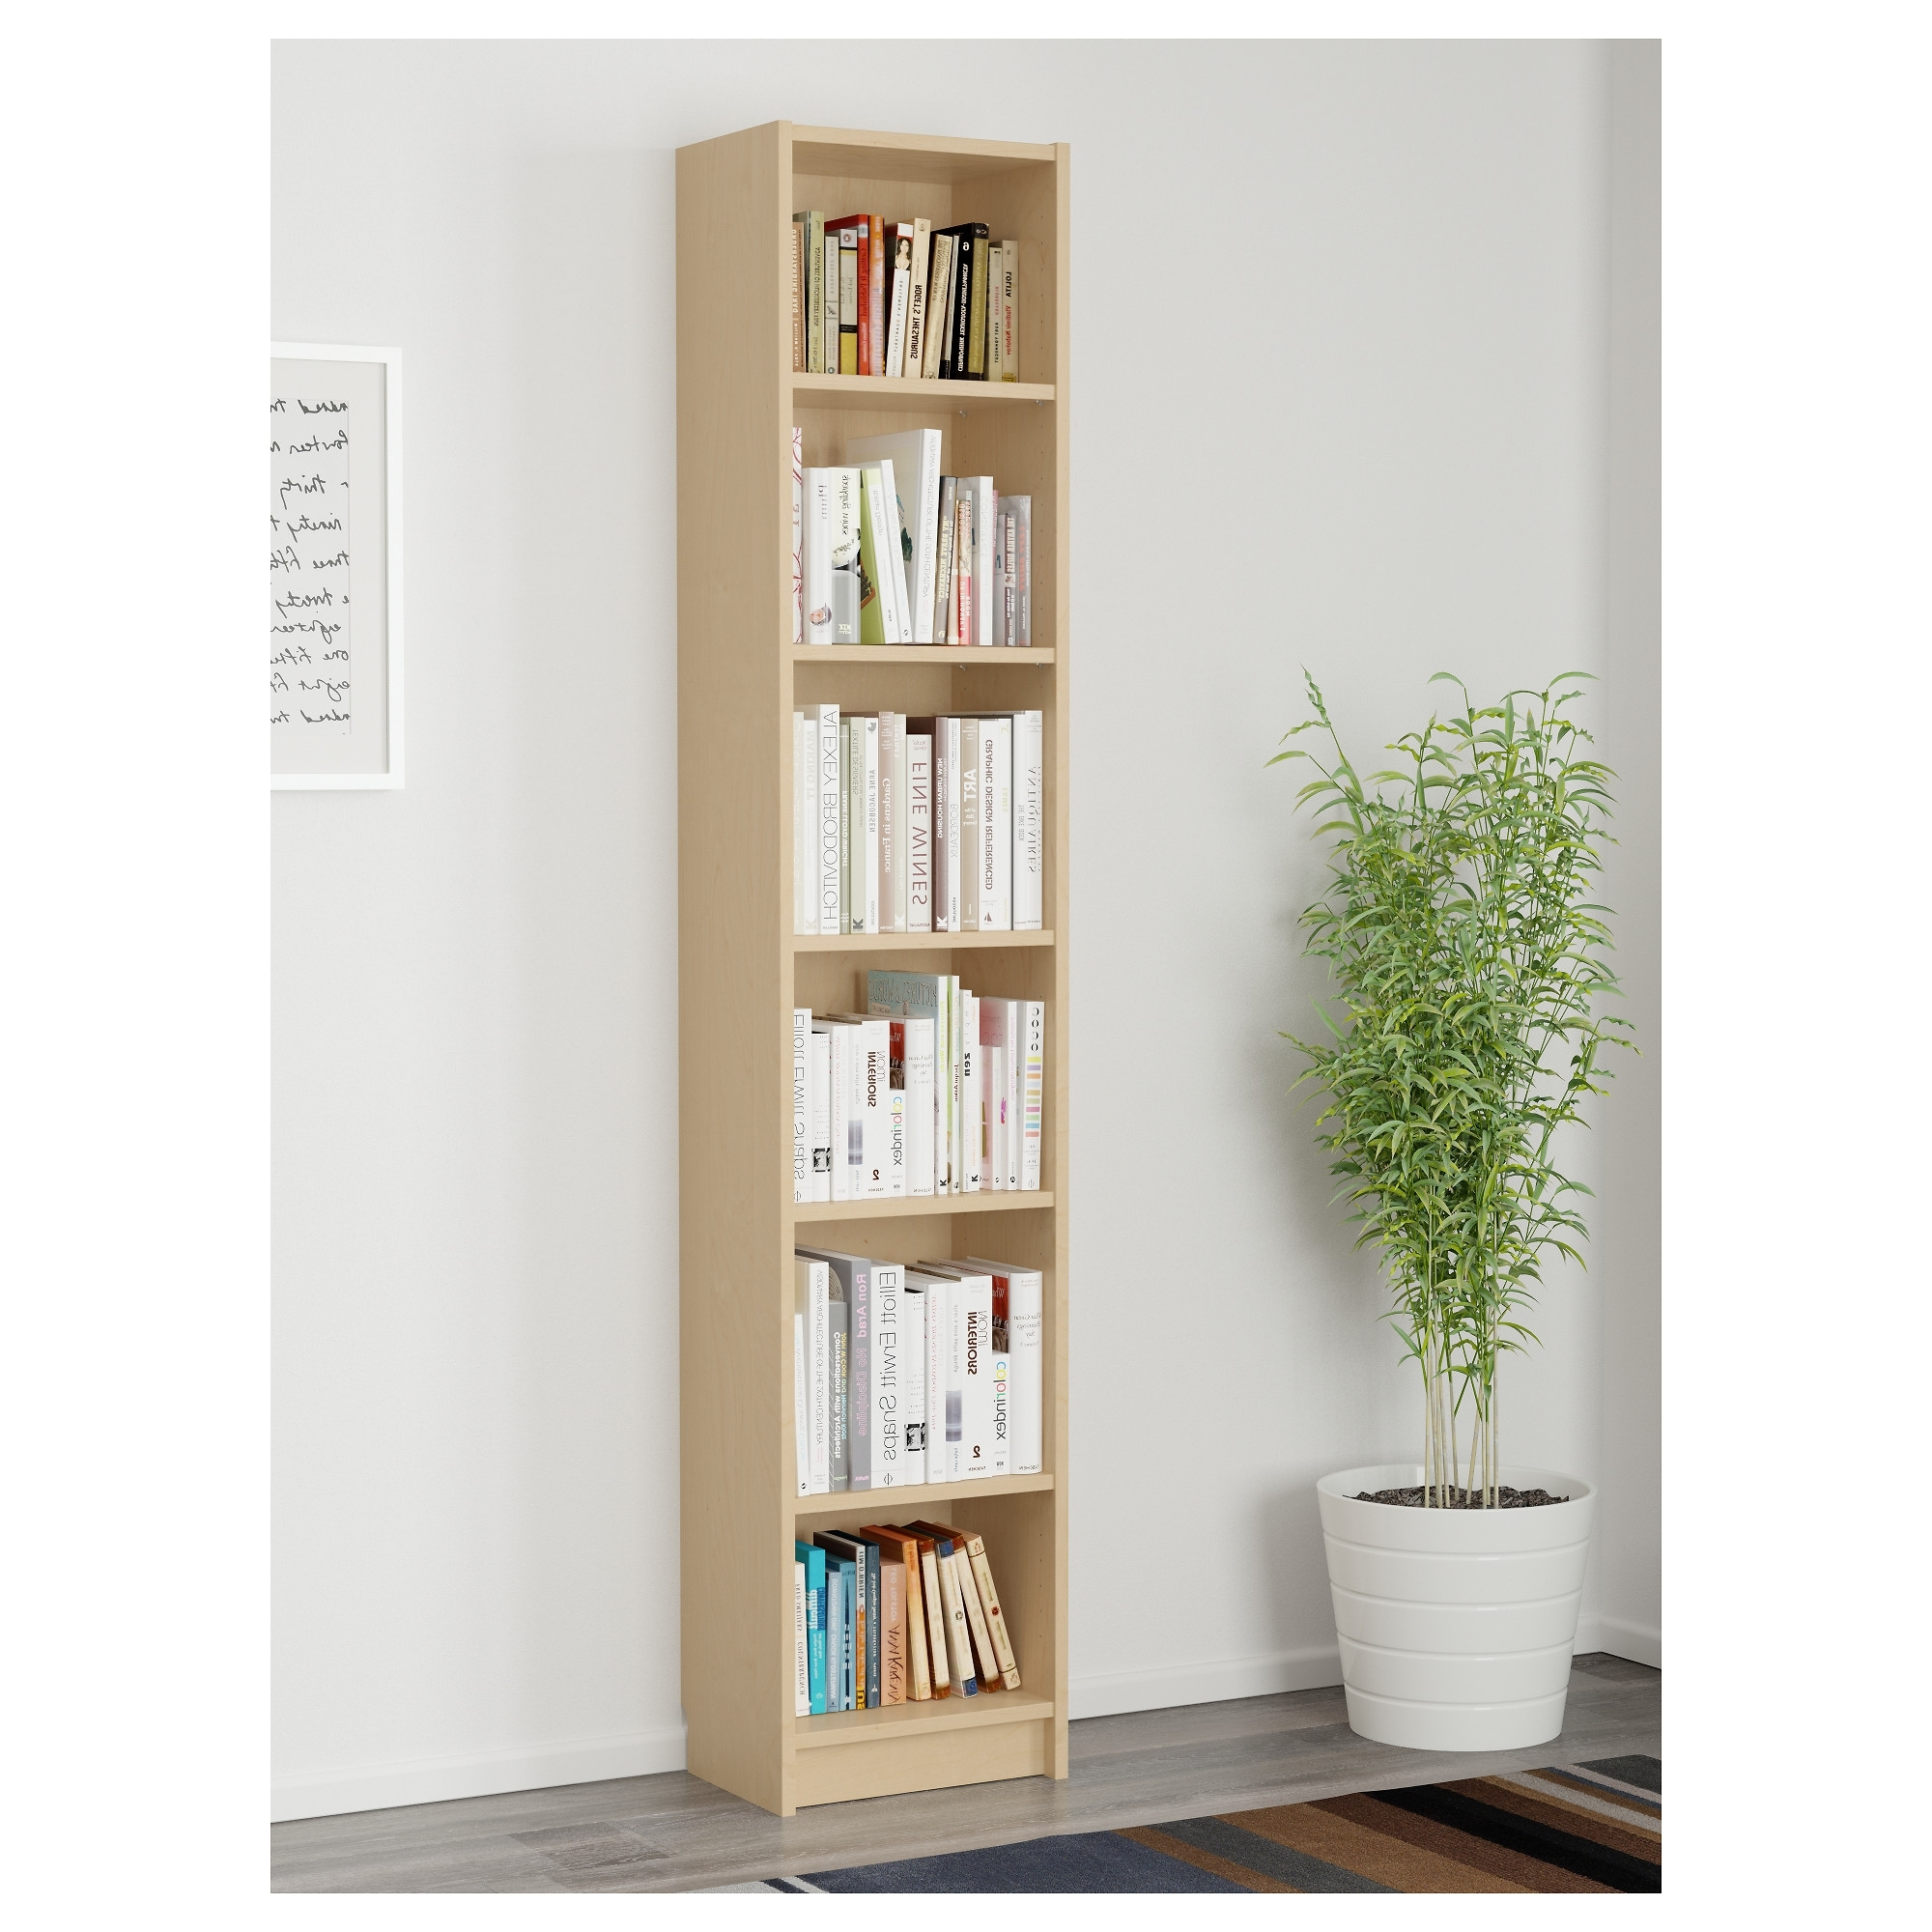 Ikea Billy Bookcases With Recent Billy Bookcase – White – Ikea (View 5 of 15)